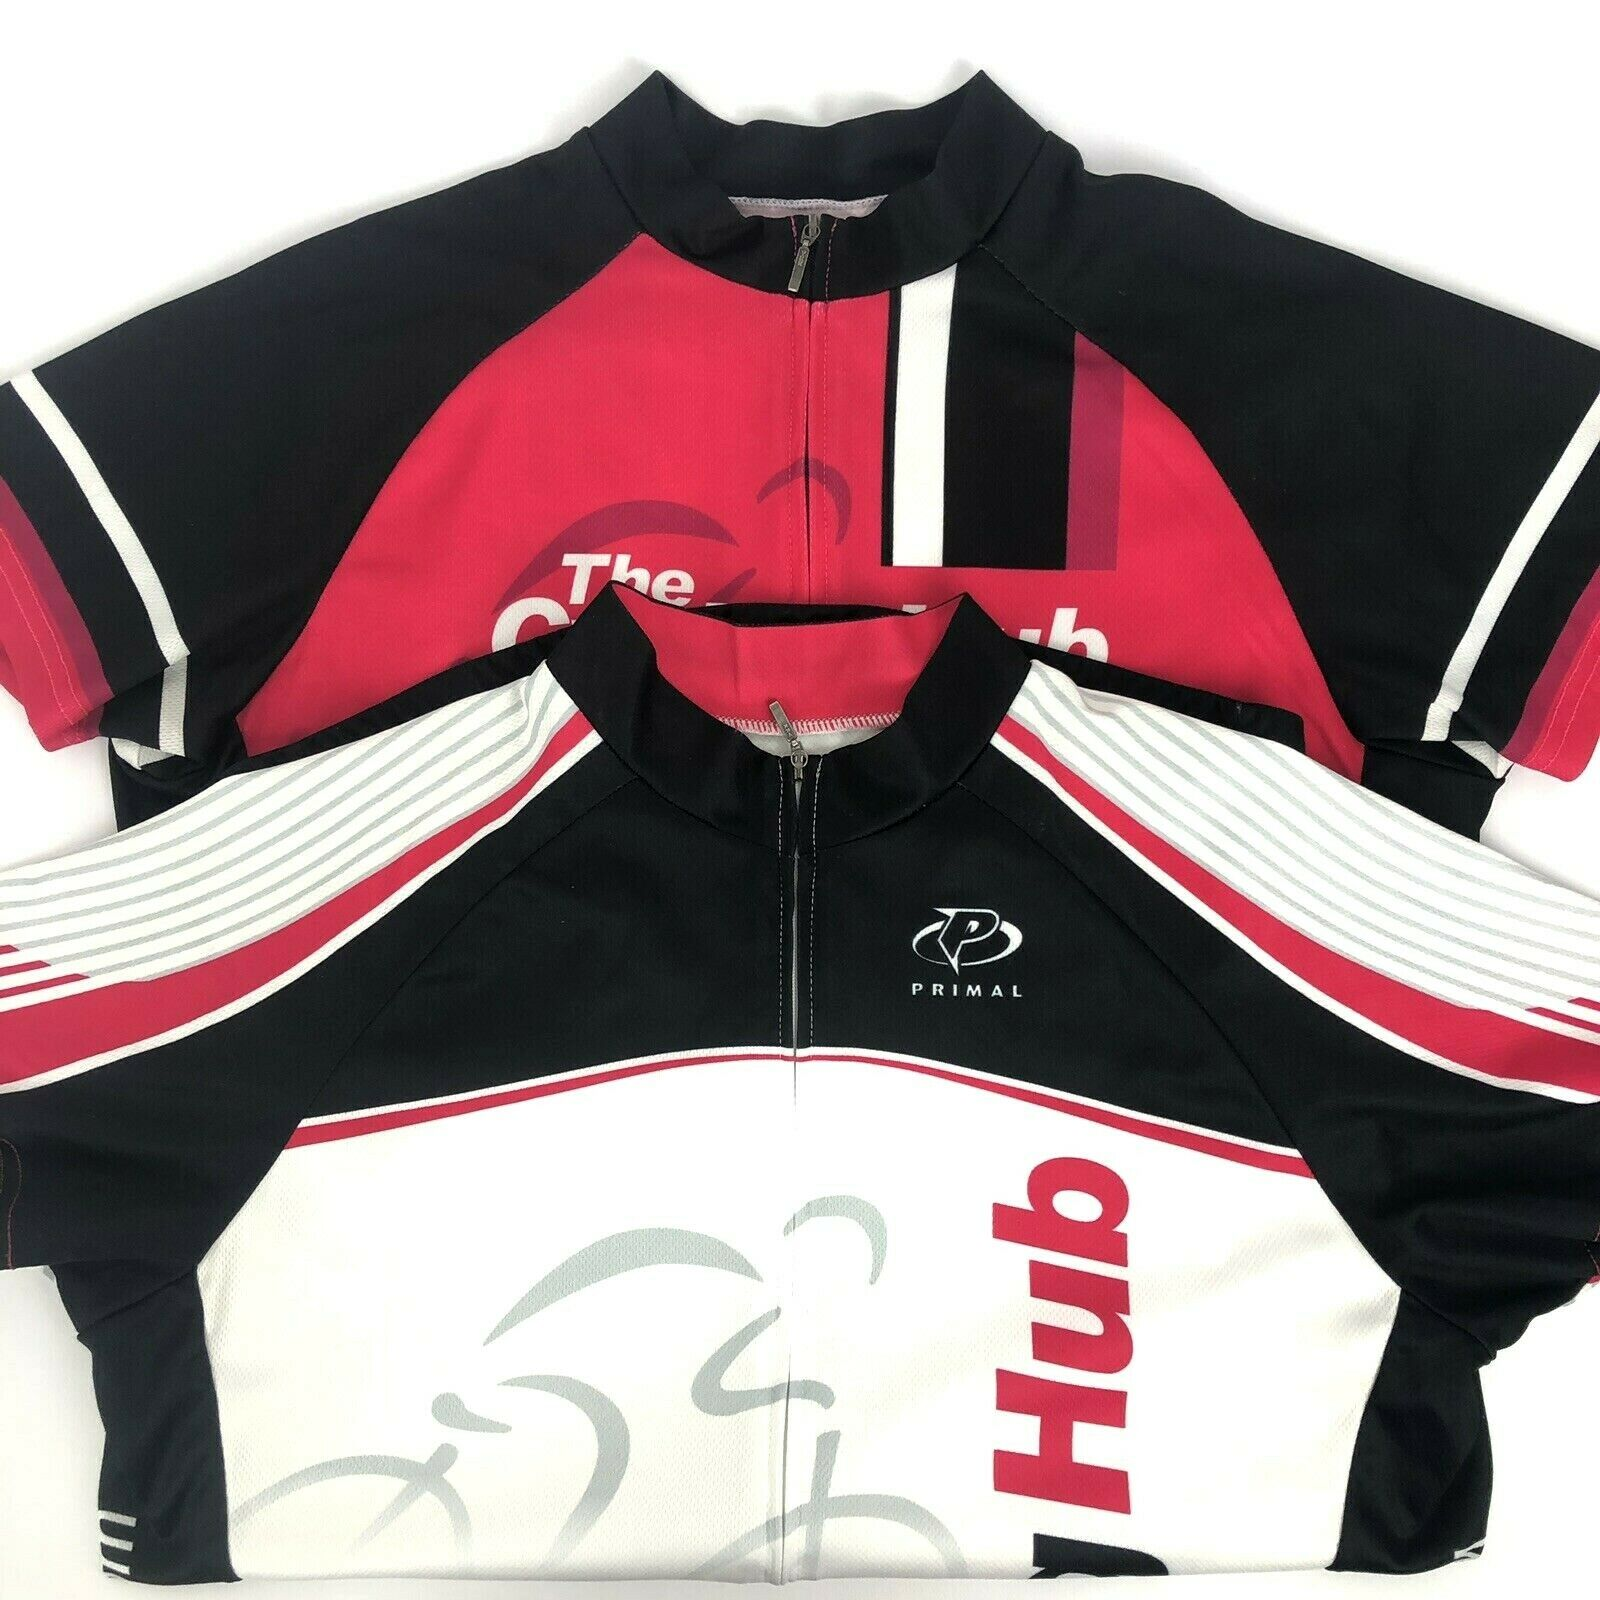 2 Primal The Cycle Hub Pink White Cycling Jersey  Shirt Women Size XL  clearance up to 70%